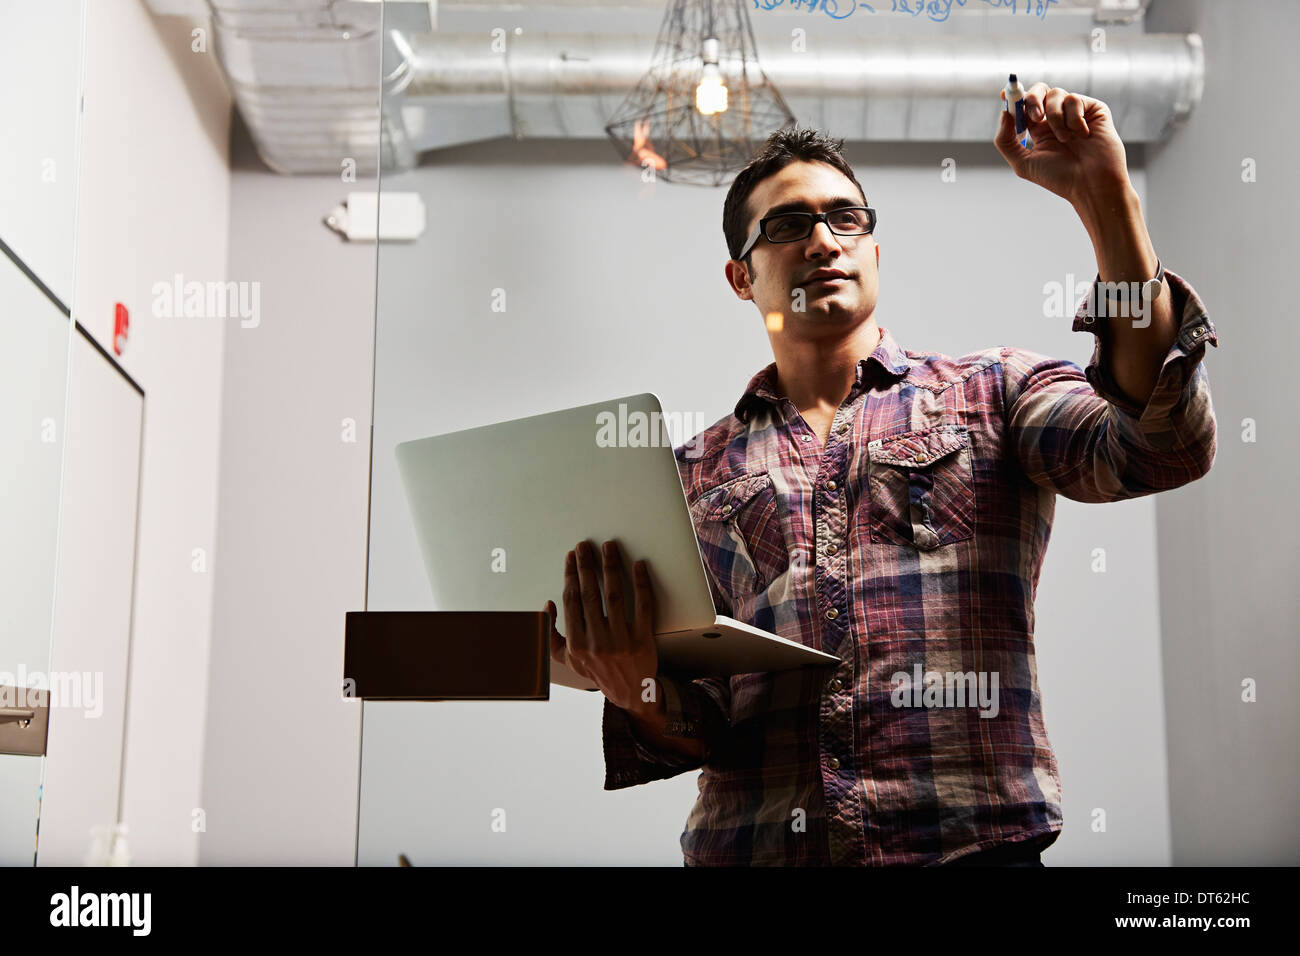 Young man holding laptop écrit sur verre Photo Stock